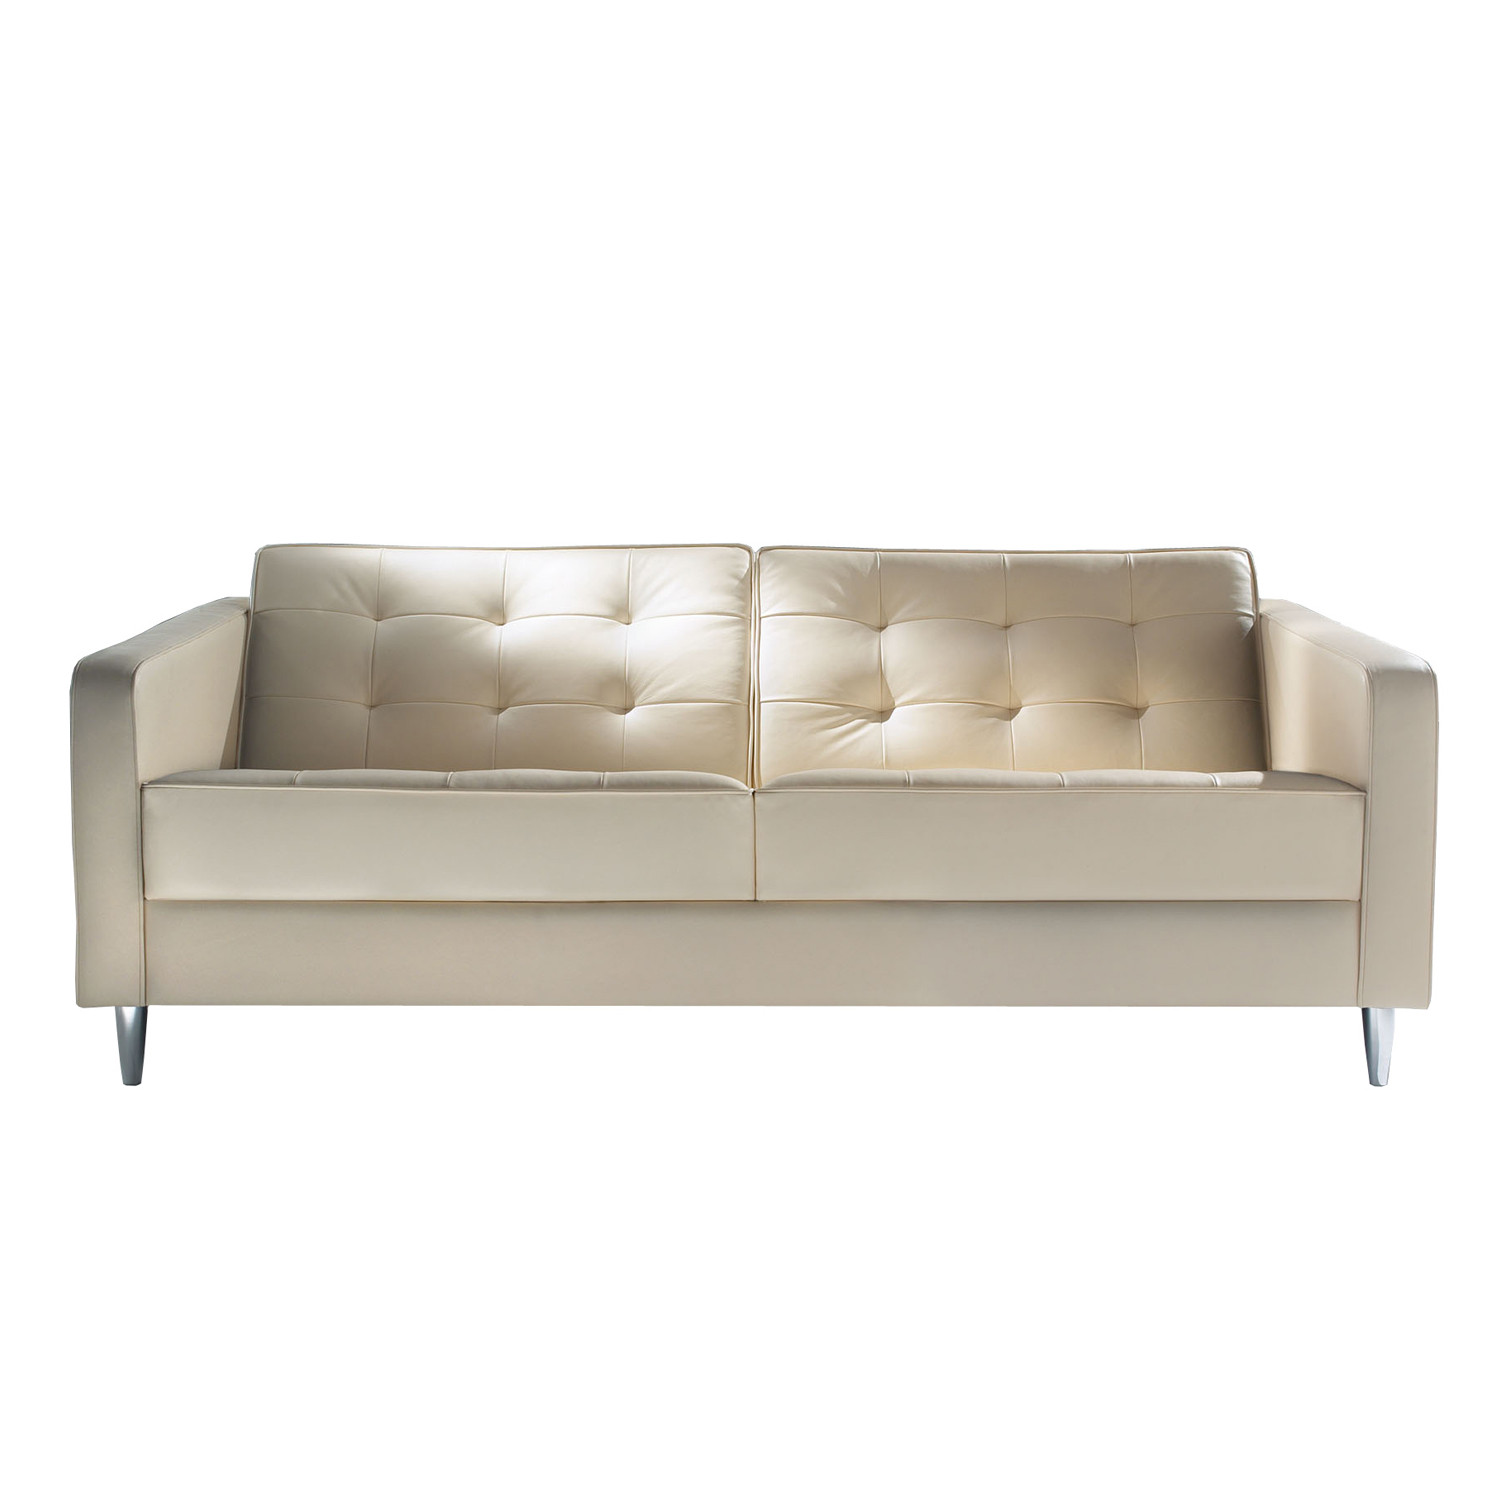 Fifth Avenue Sofa